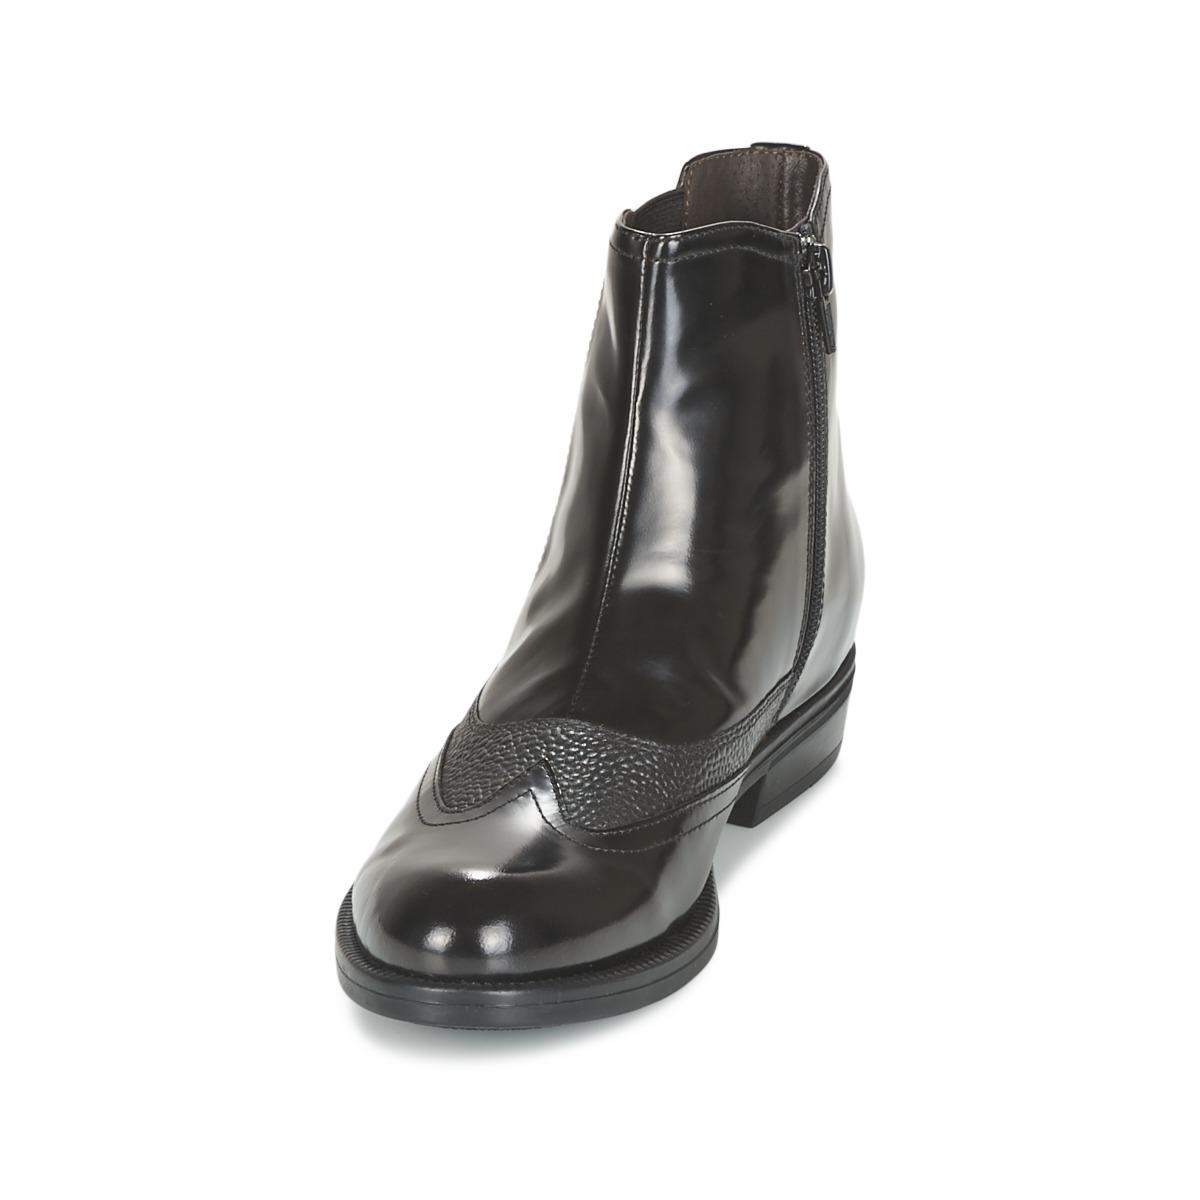 Stonefly Leather Clyde 15 Women's Mid Boots In Black